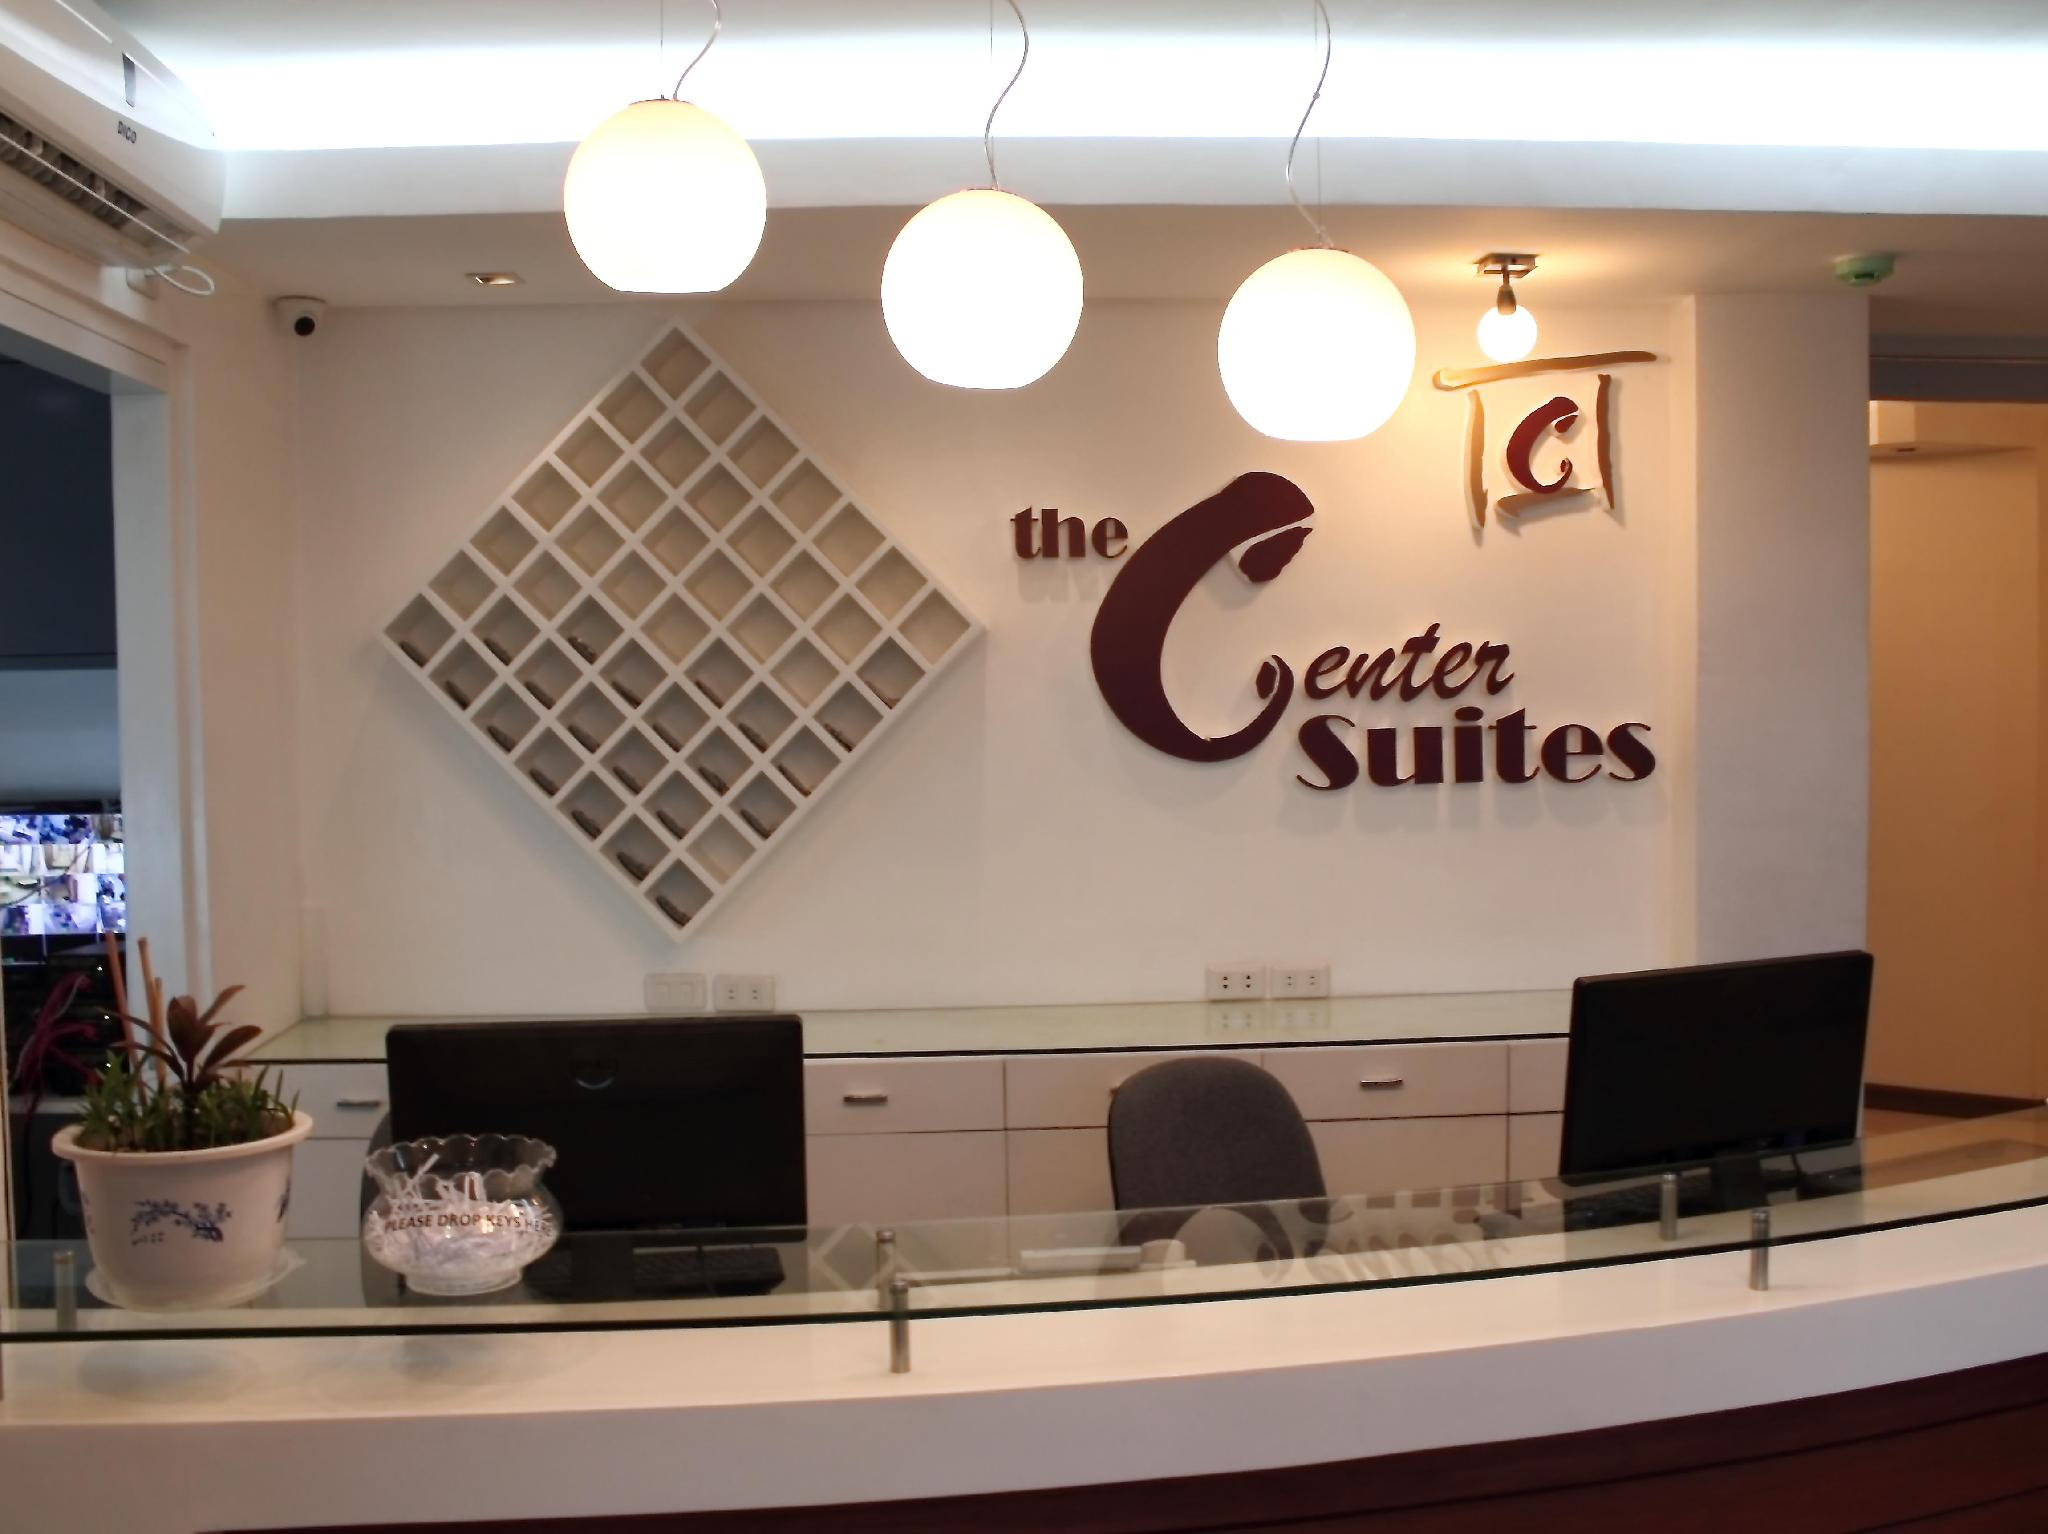 The Center Suites 宿霧